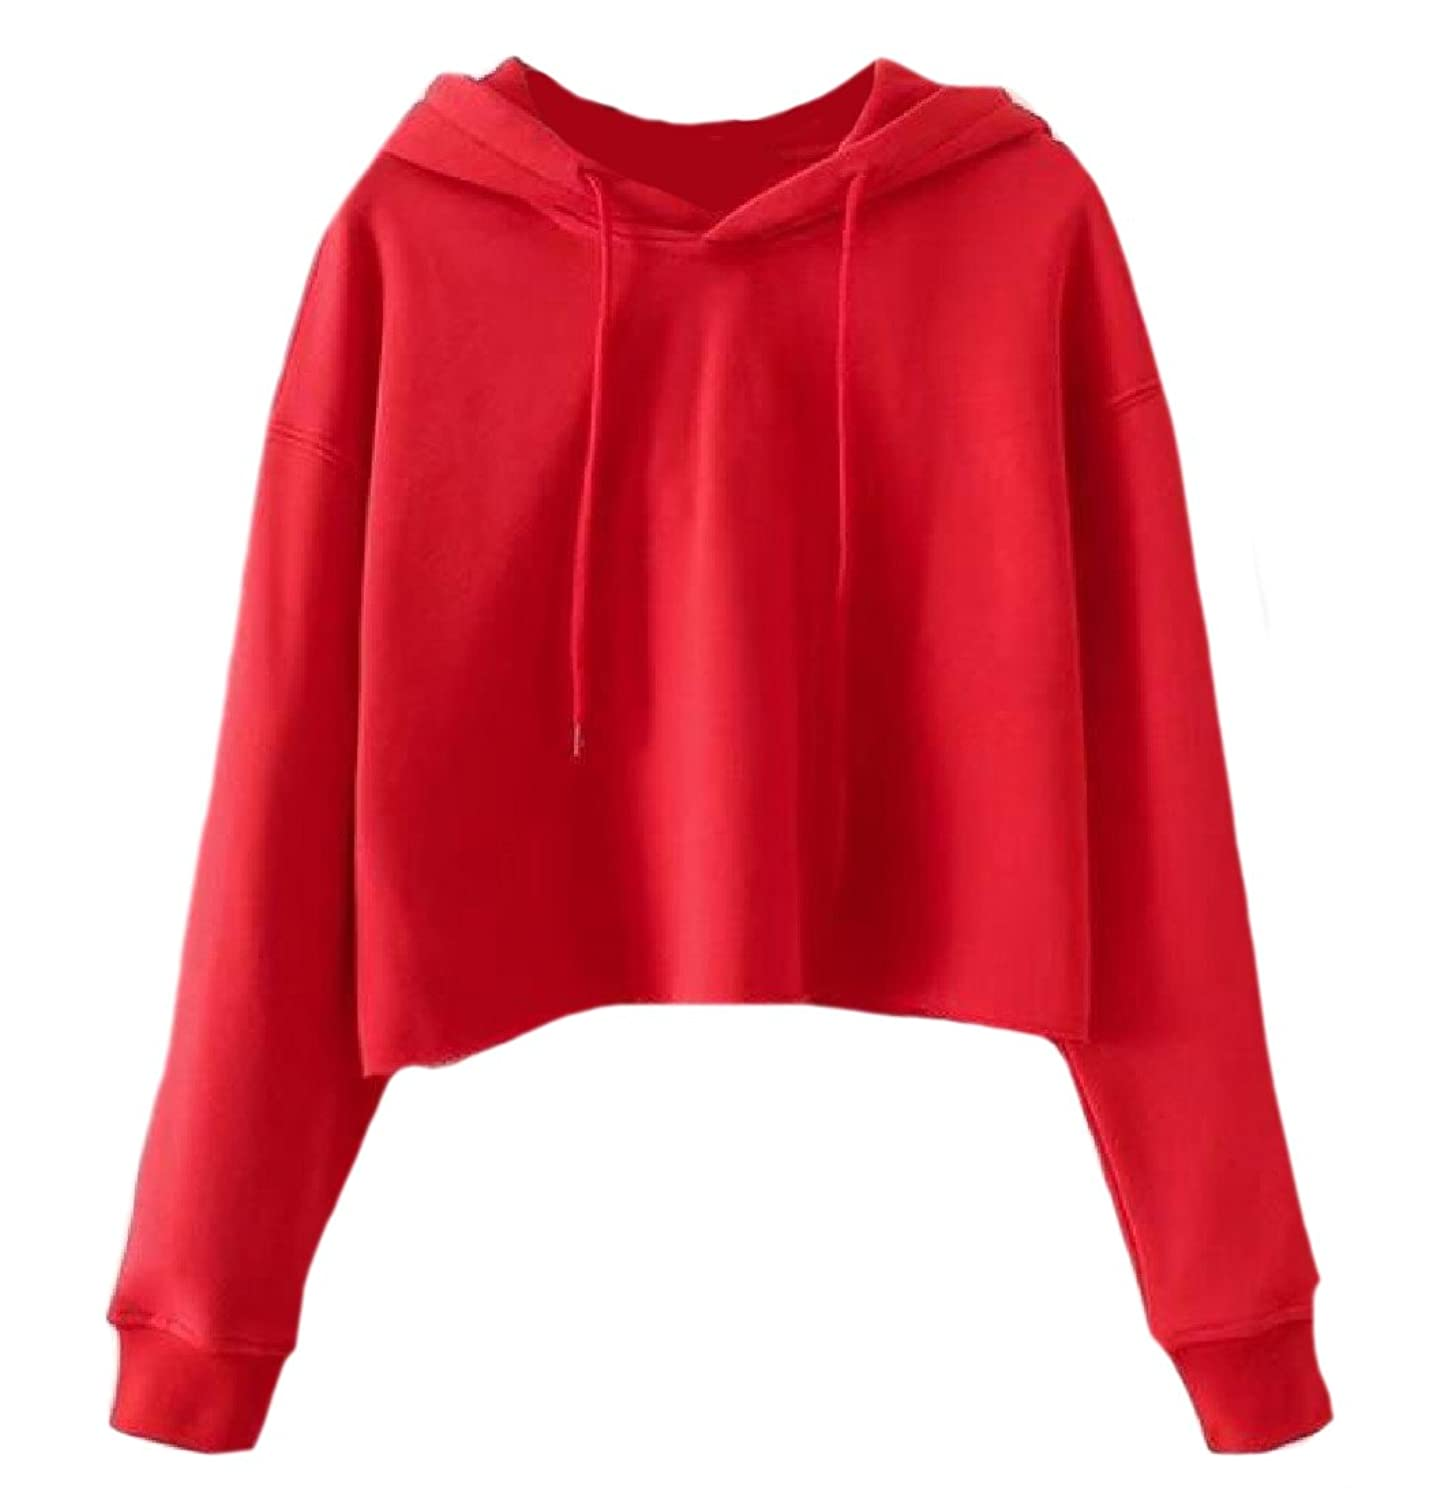 Abetteric Womens Baggy Cozy Drawstring Pullover Cropped Hooded Sweatshirts